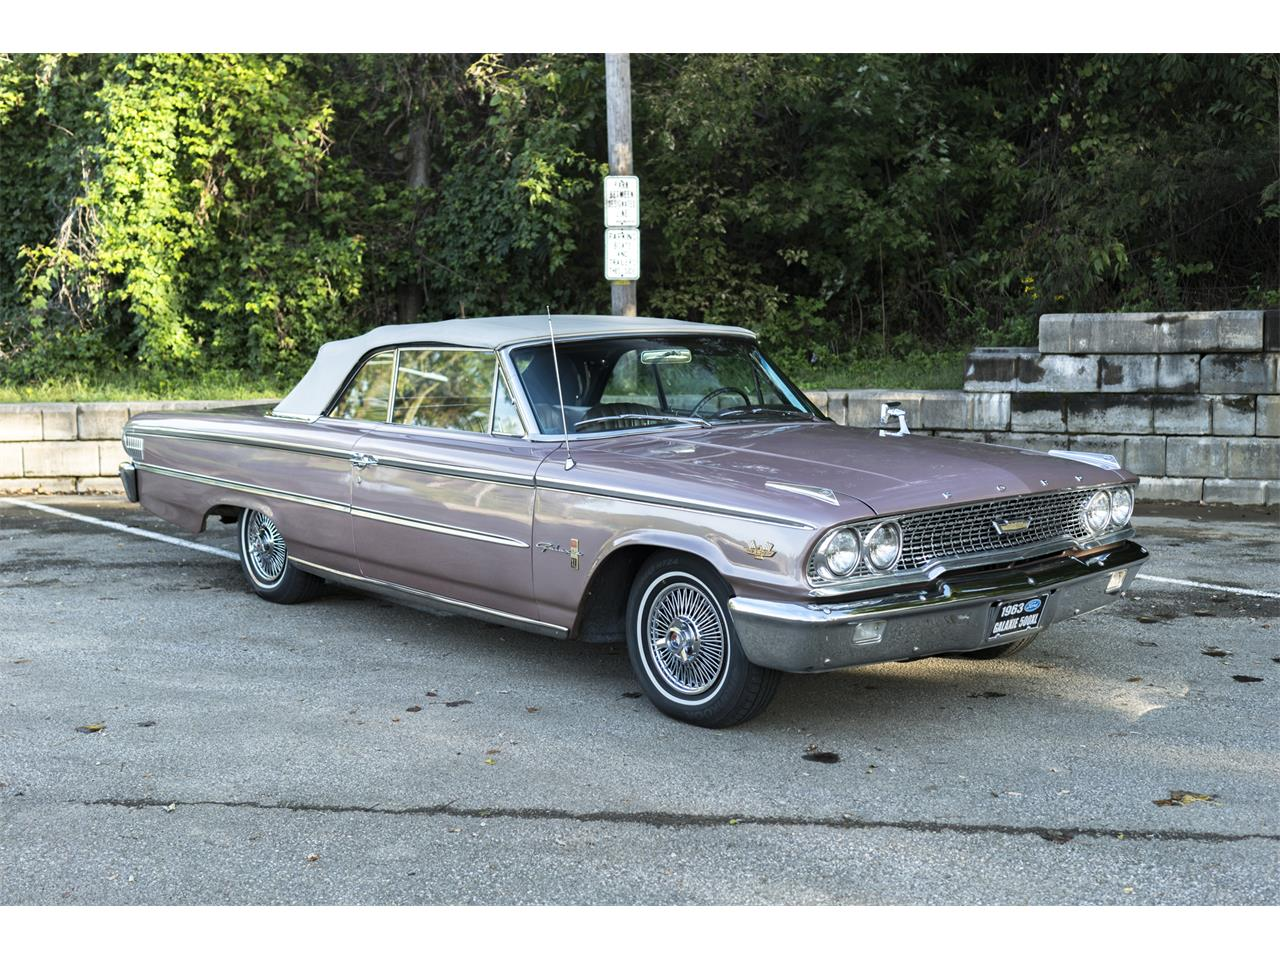 Large Picture of Classic '63 Ford Galaxie 500 XL located in Pennsylvania - $34,500.00 - ORPQ